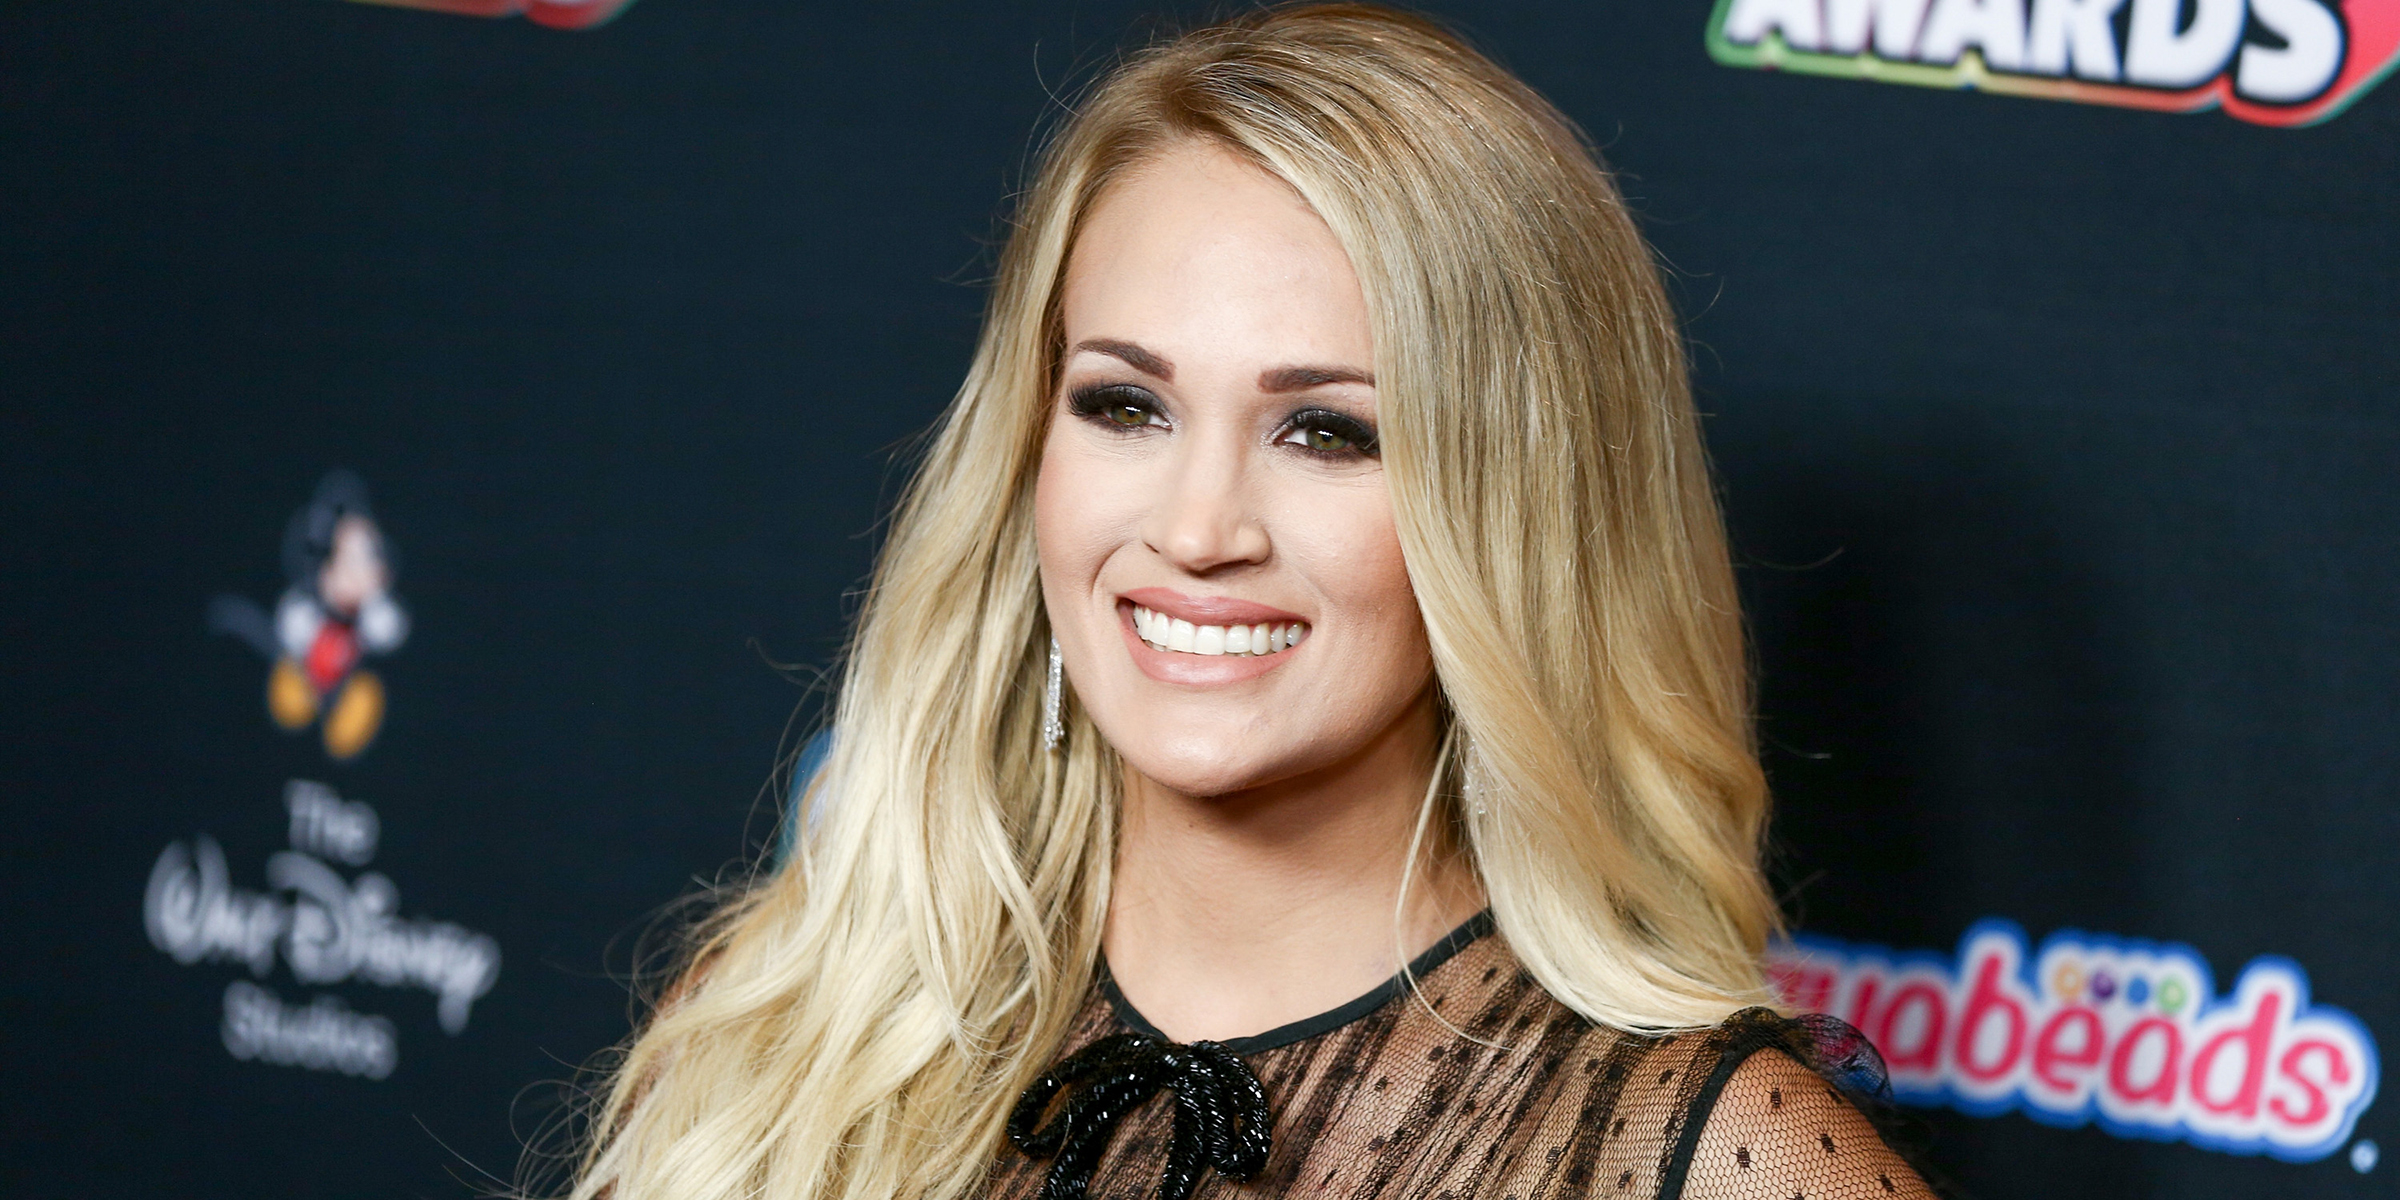 Carrie Underwood Shares Her Hair Skin Care And Beauty Secrets